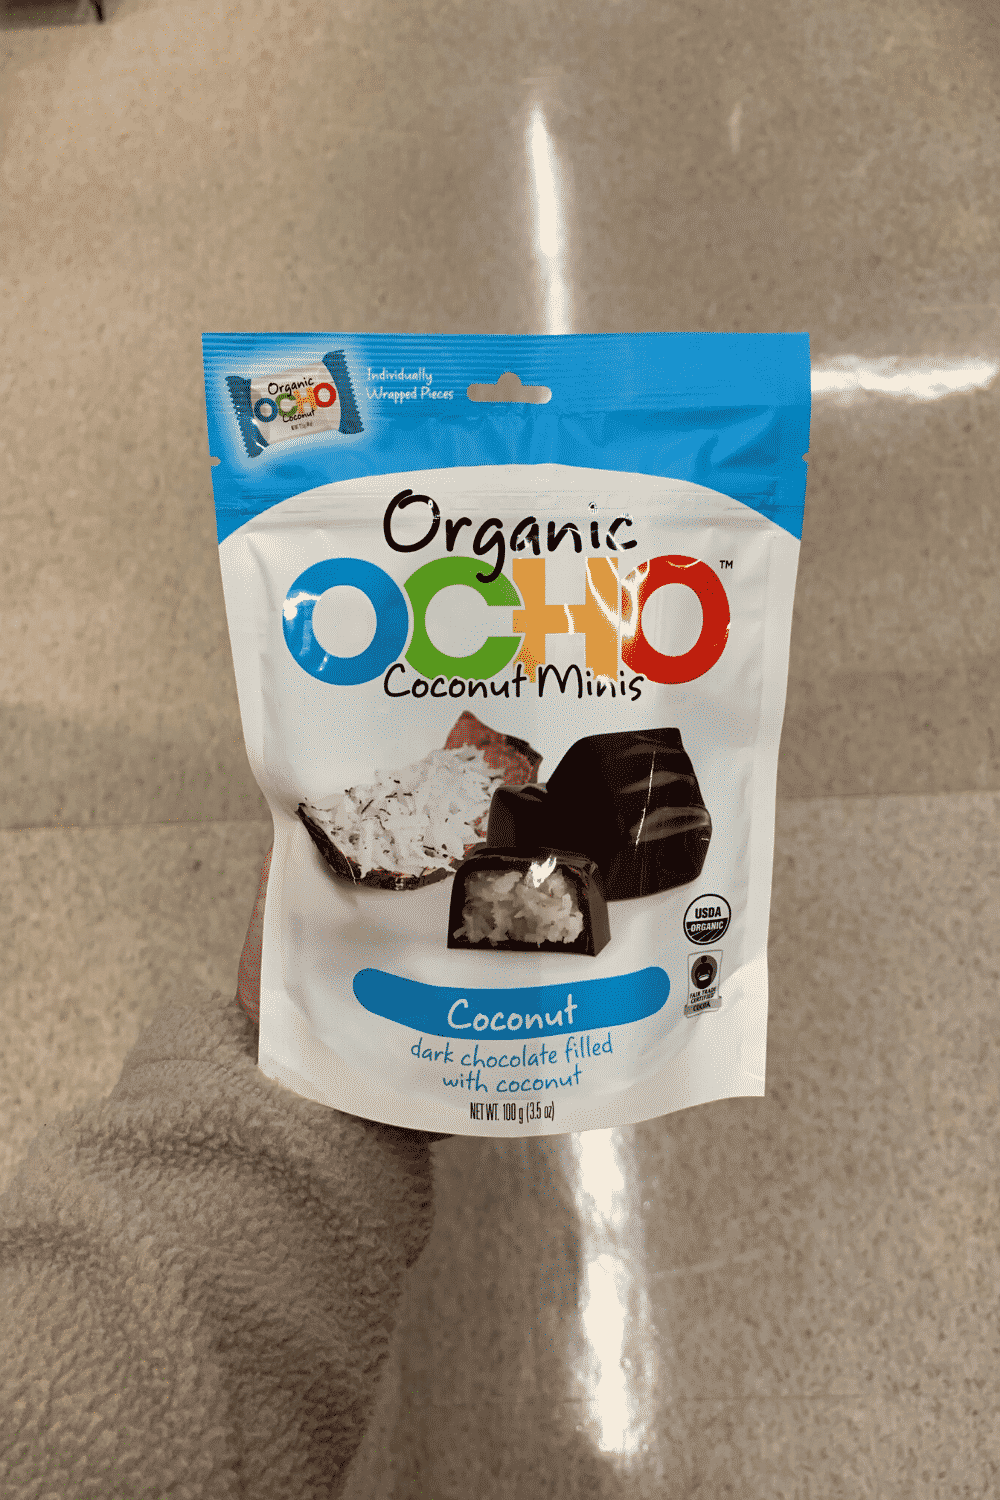 A hand holding a package of OCO coconut minis